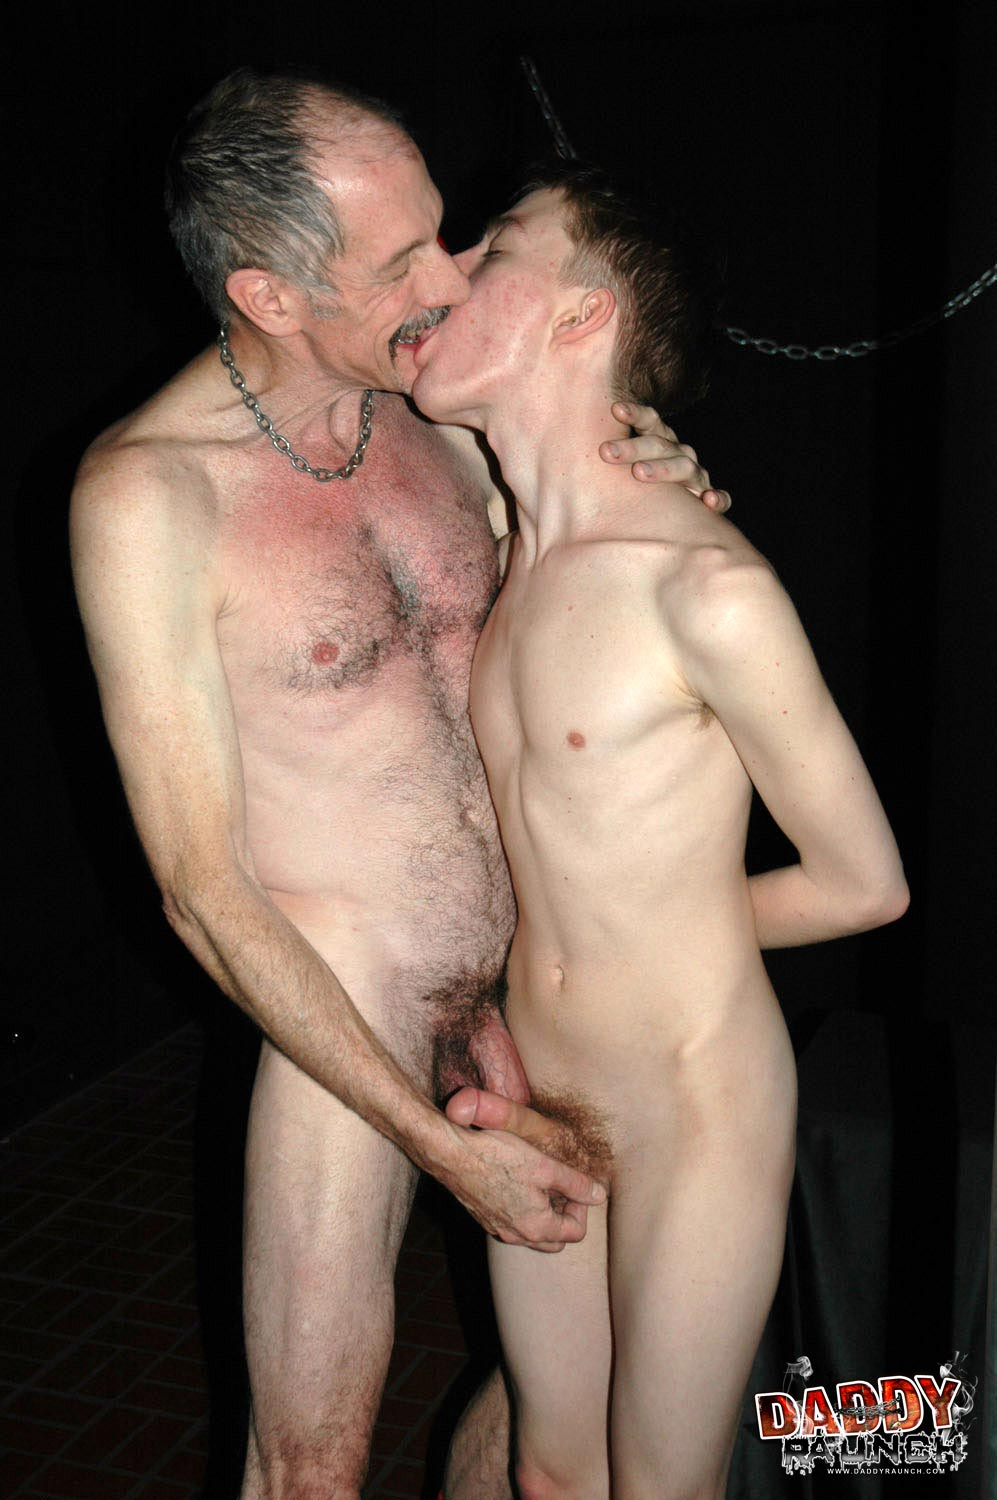 father fucking son in gay porn Ploy